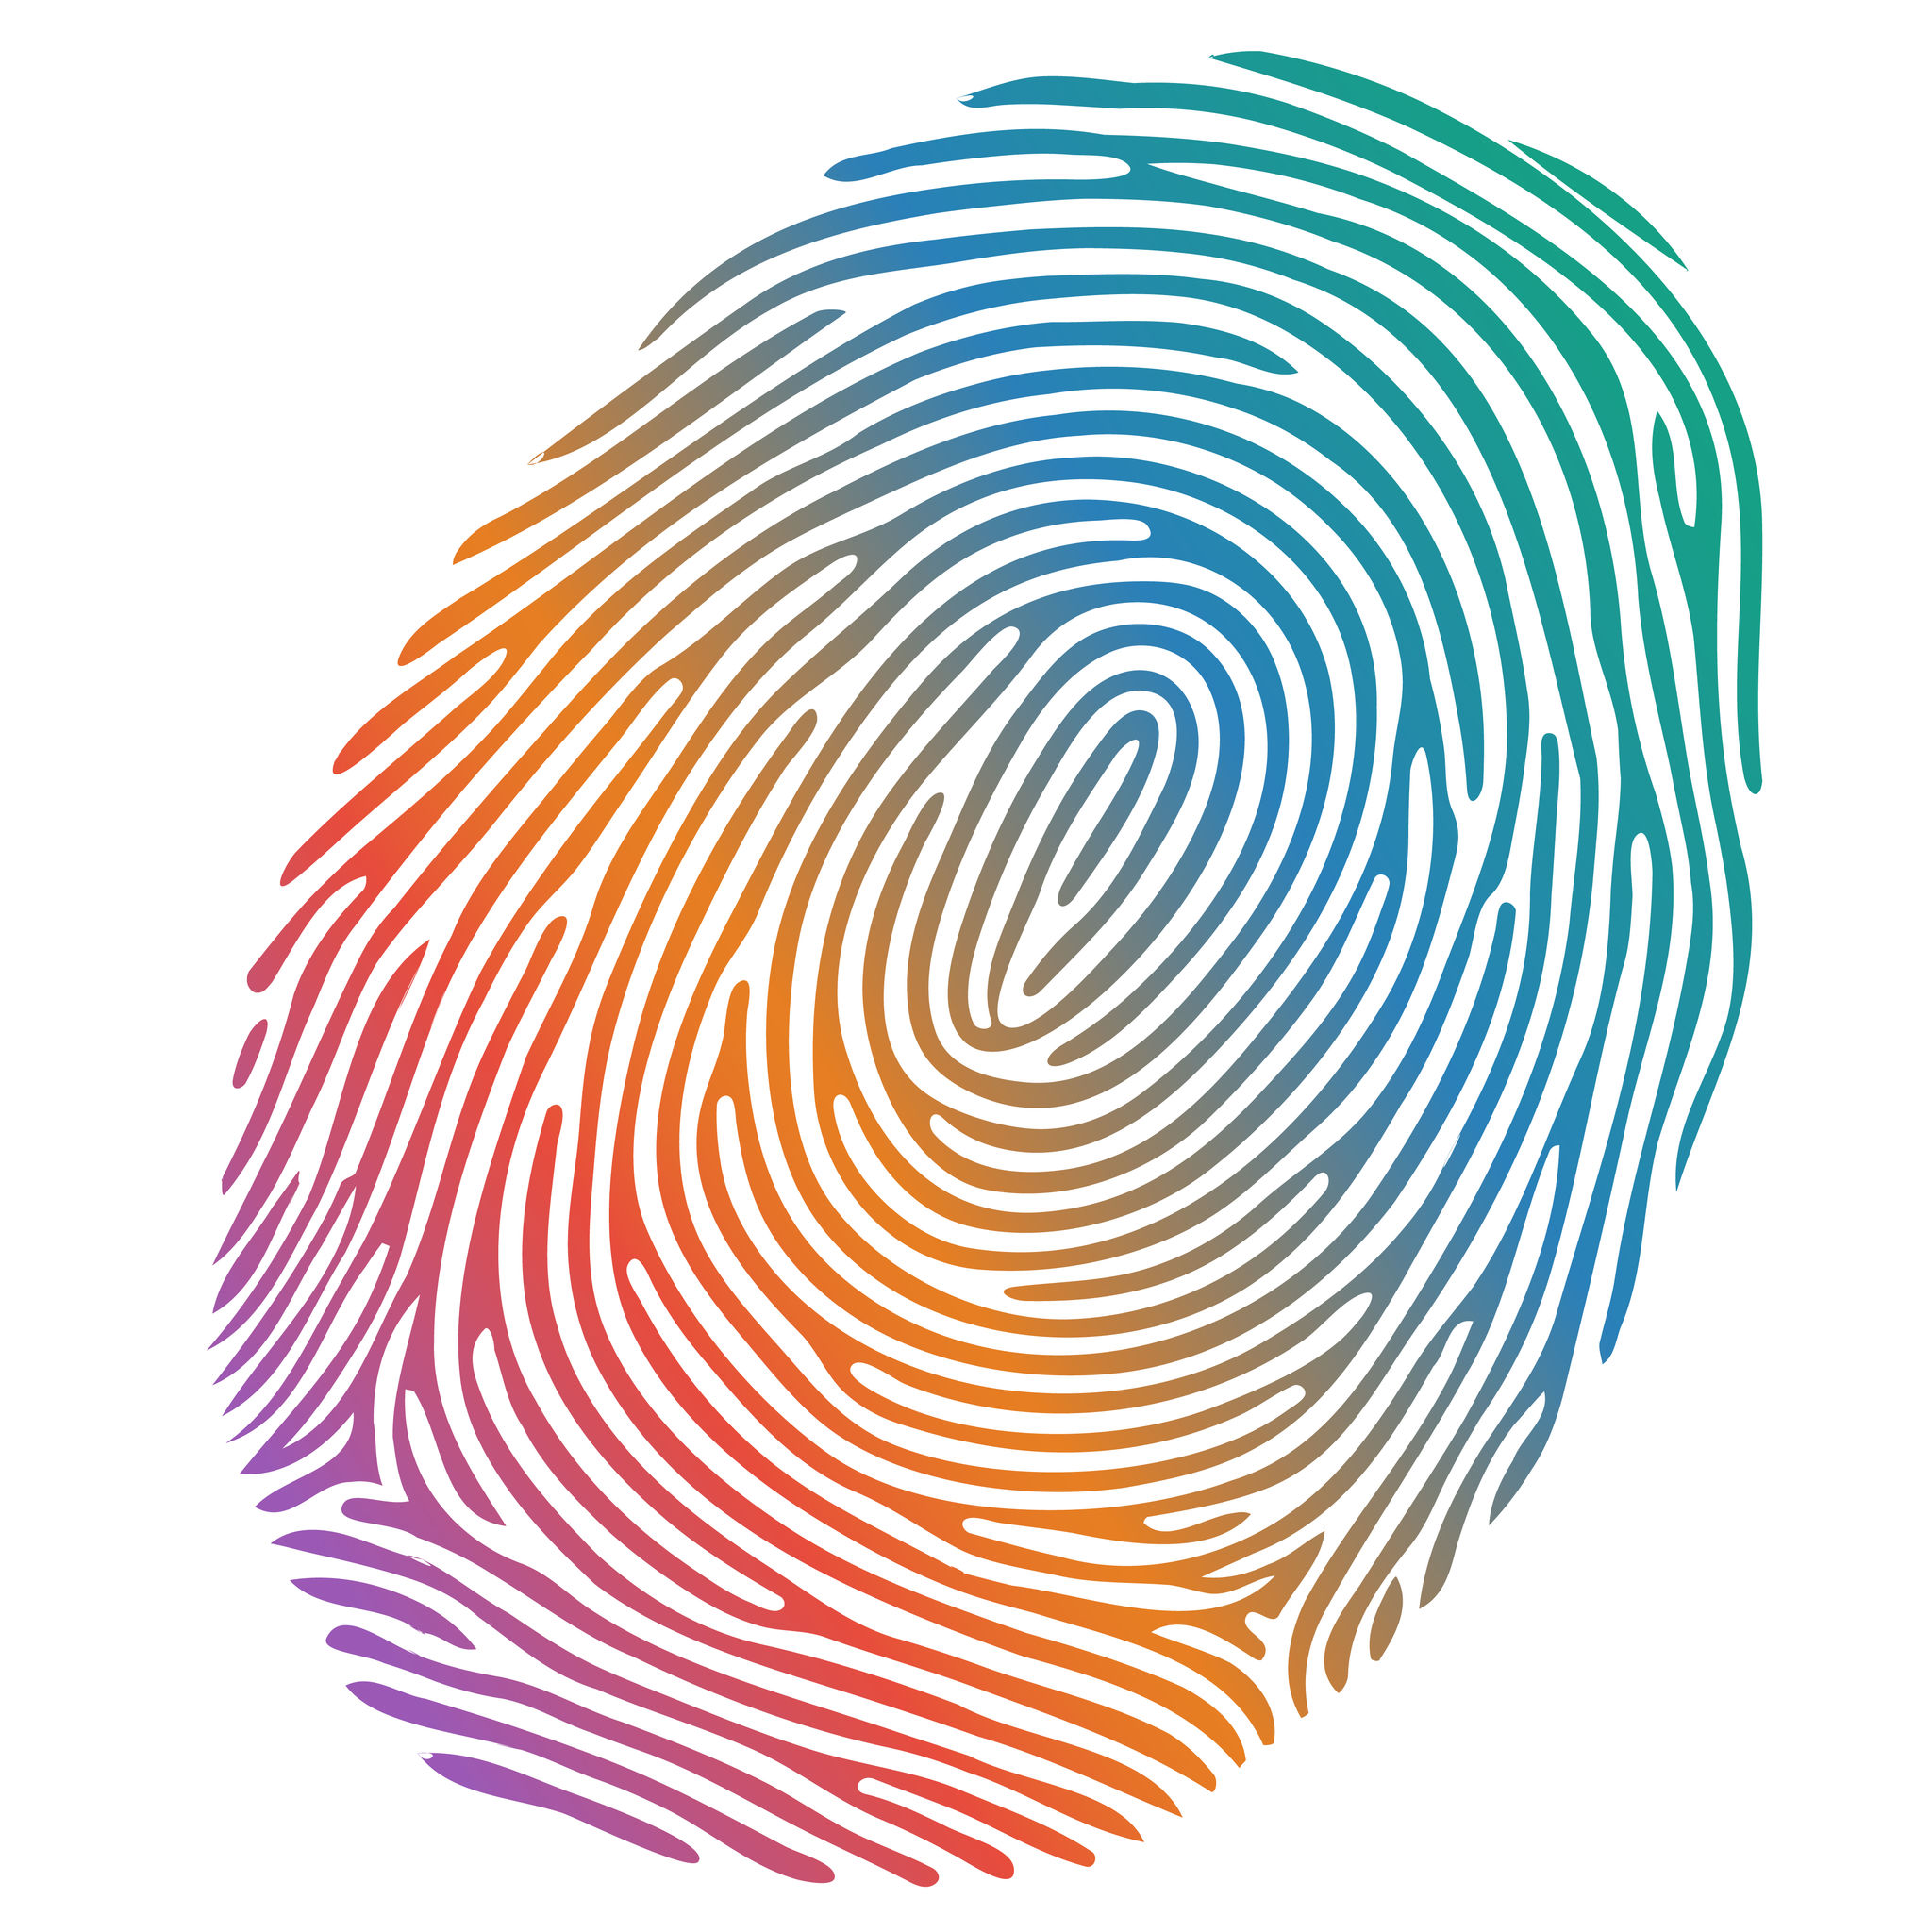 Yes, You Do Have to Get Fingerprinted - Again - Across the